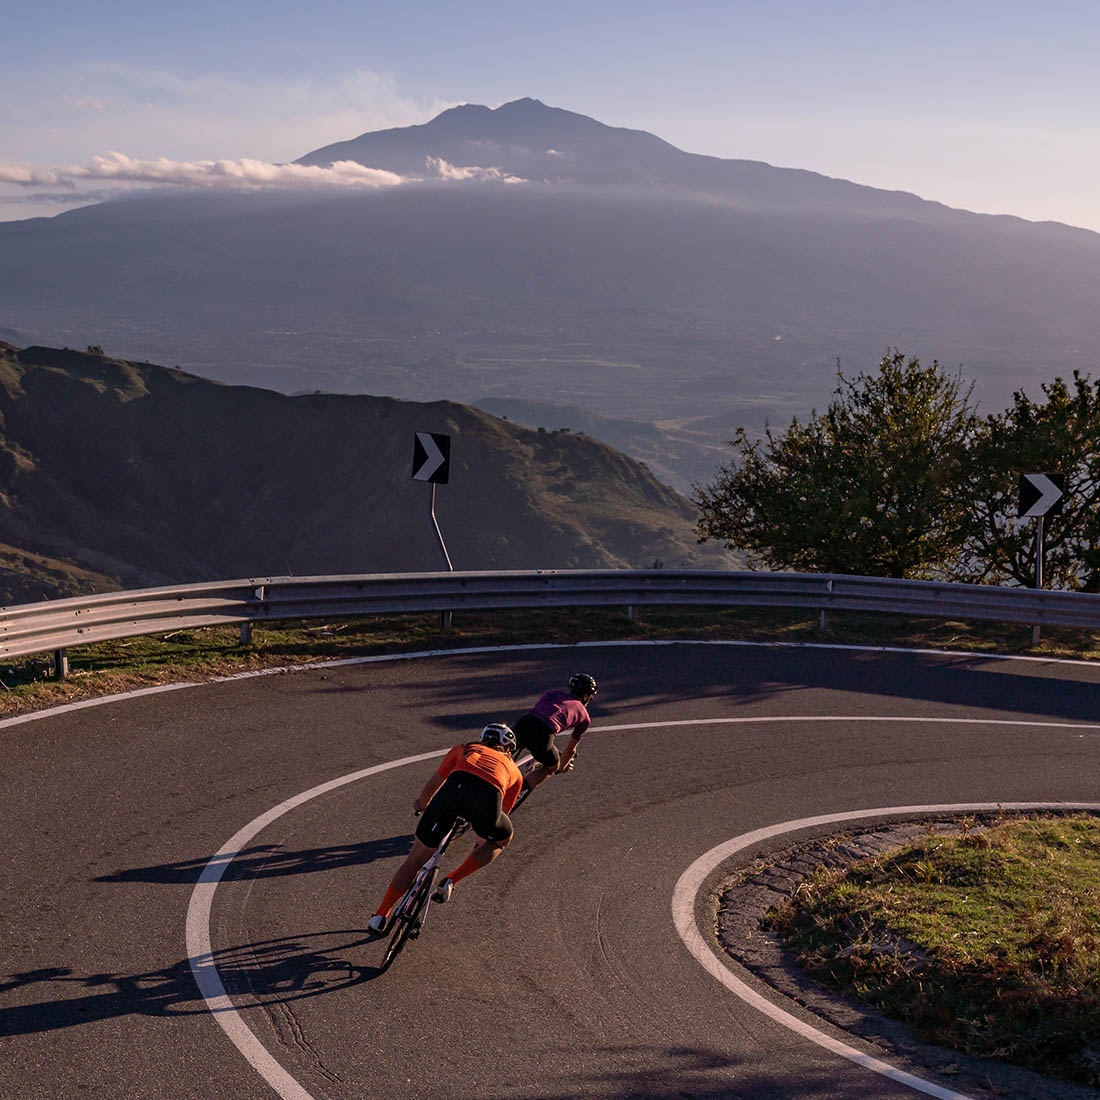 speed descending in Sicily on rad bikes and Luxa apparel (Etna volcano in the background)